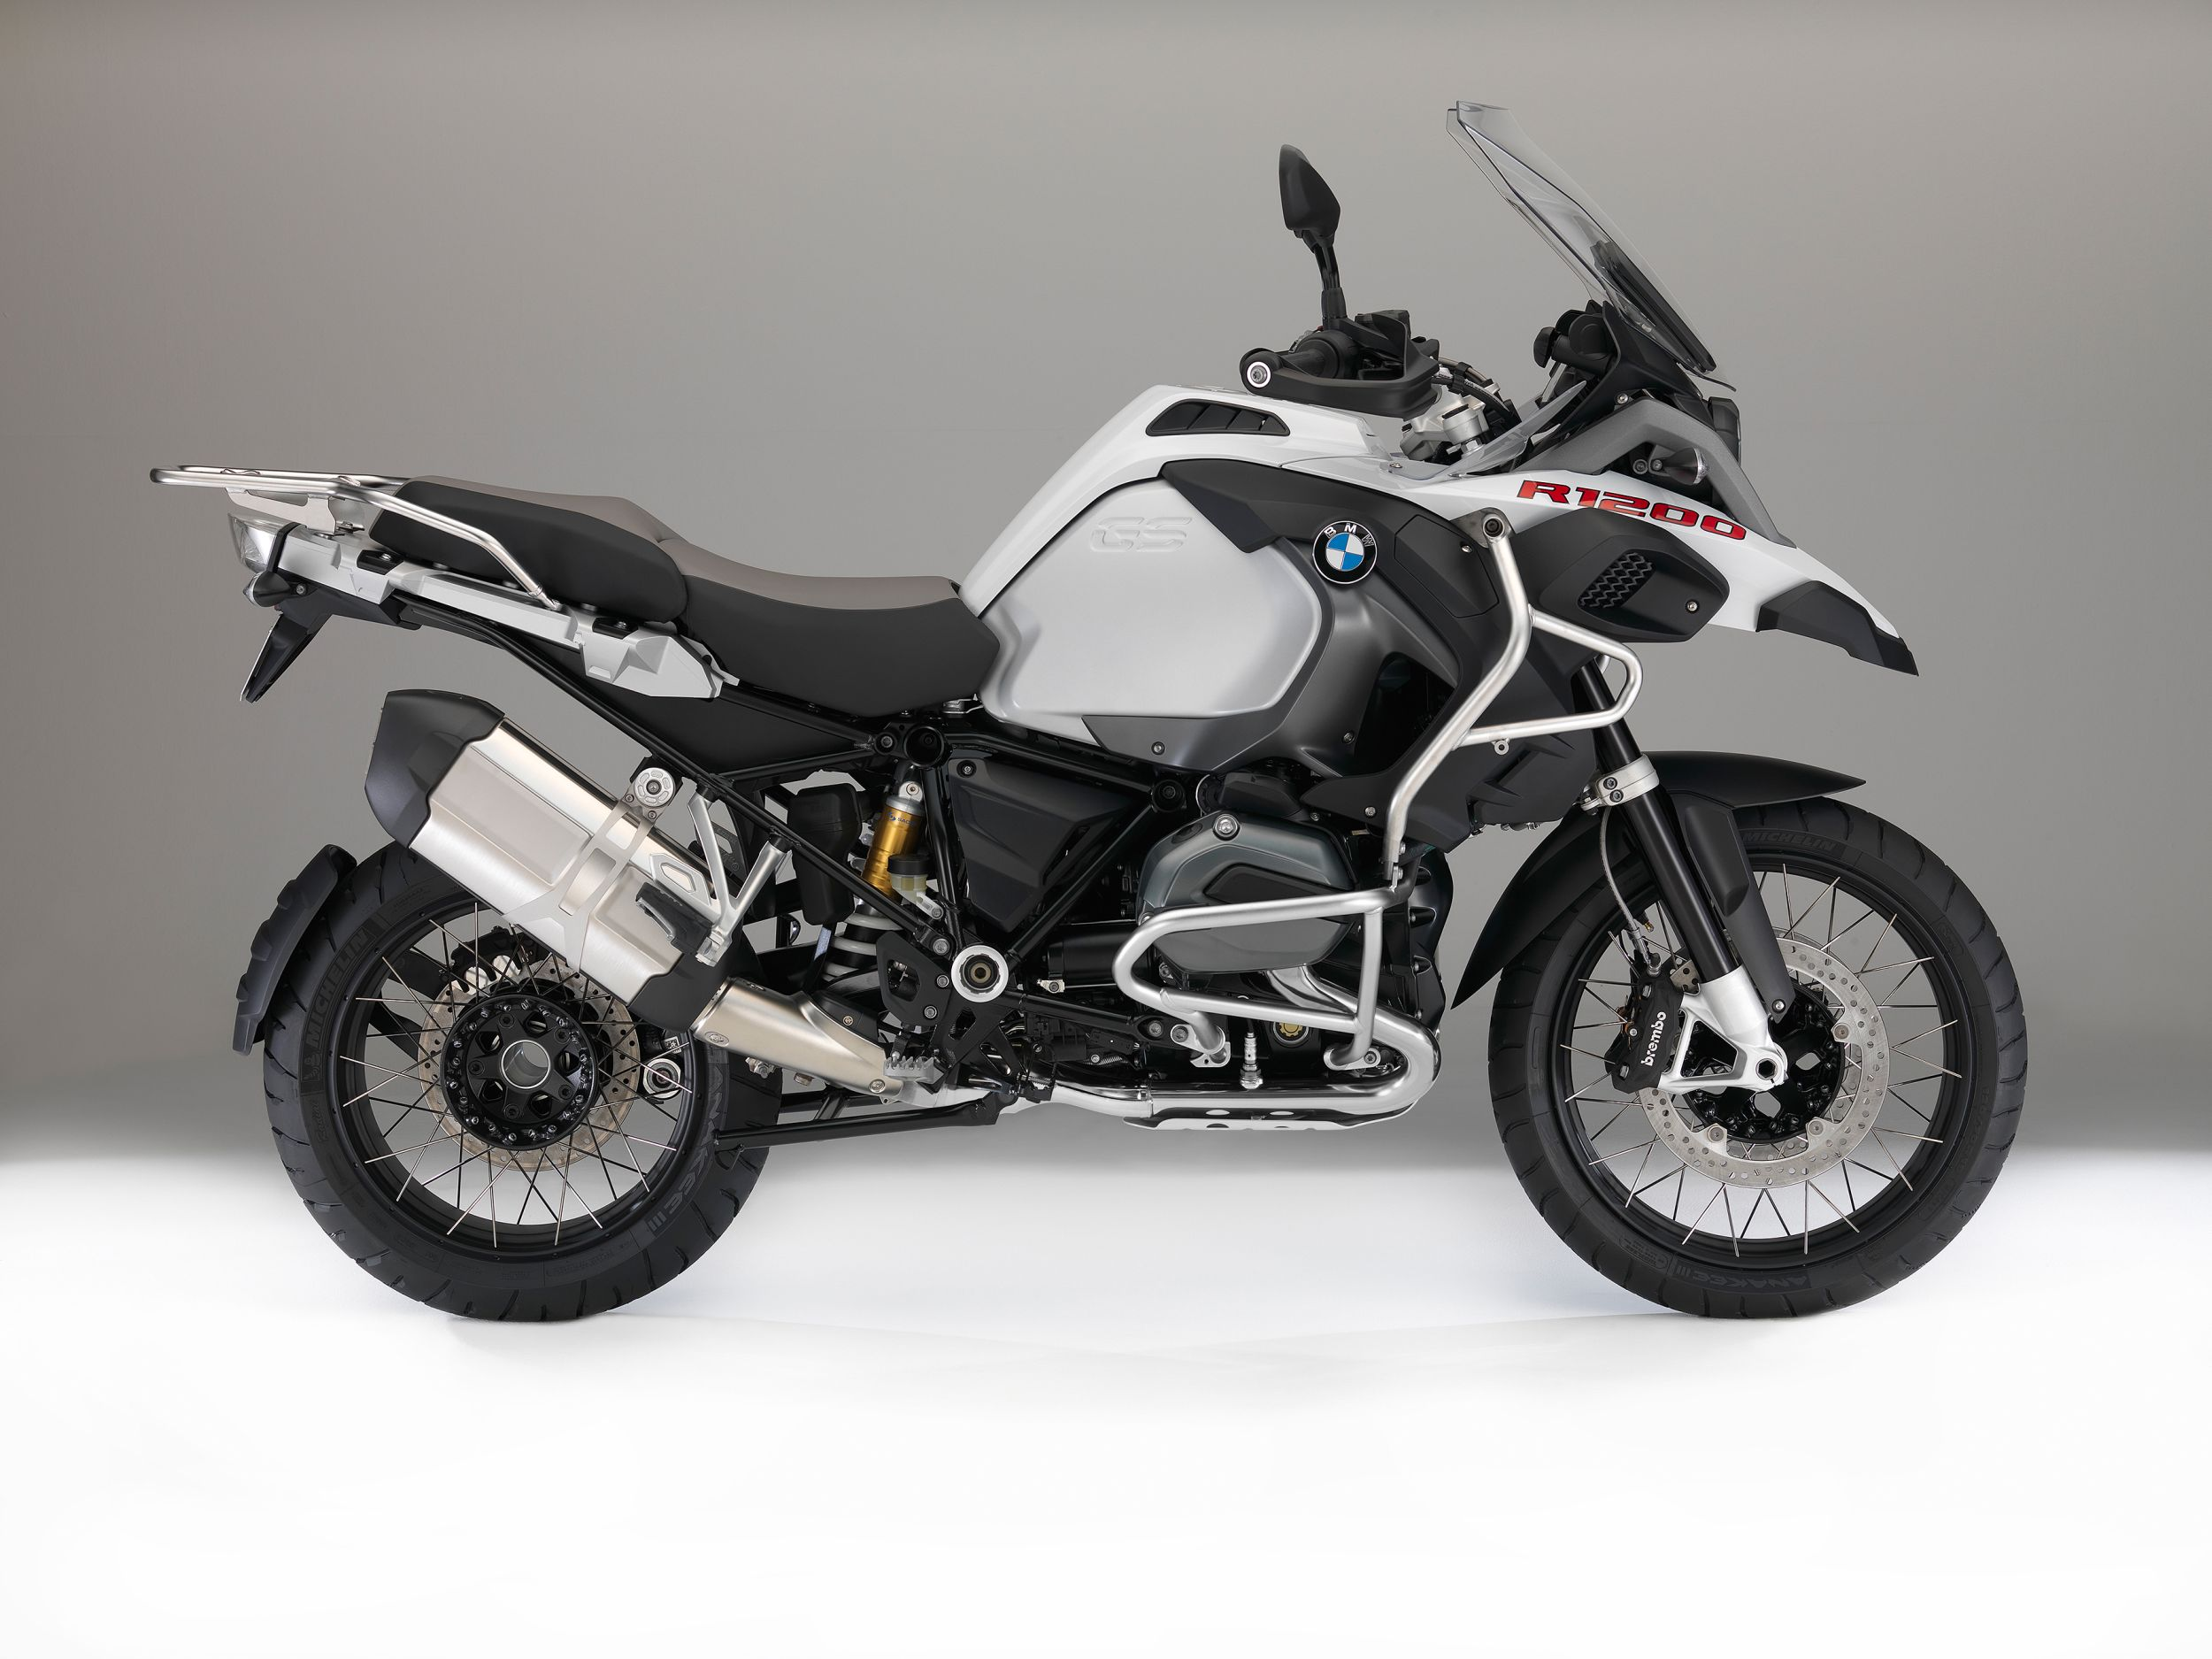 BMW R 1200 GS Adventure Foto 4